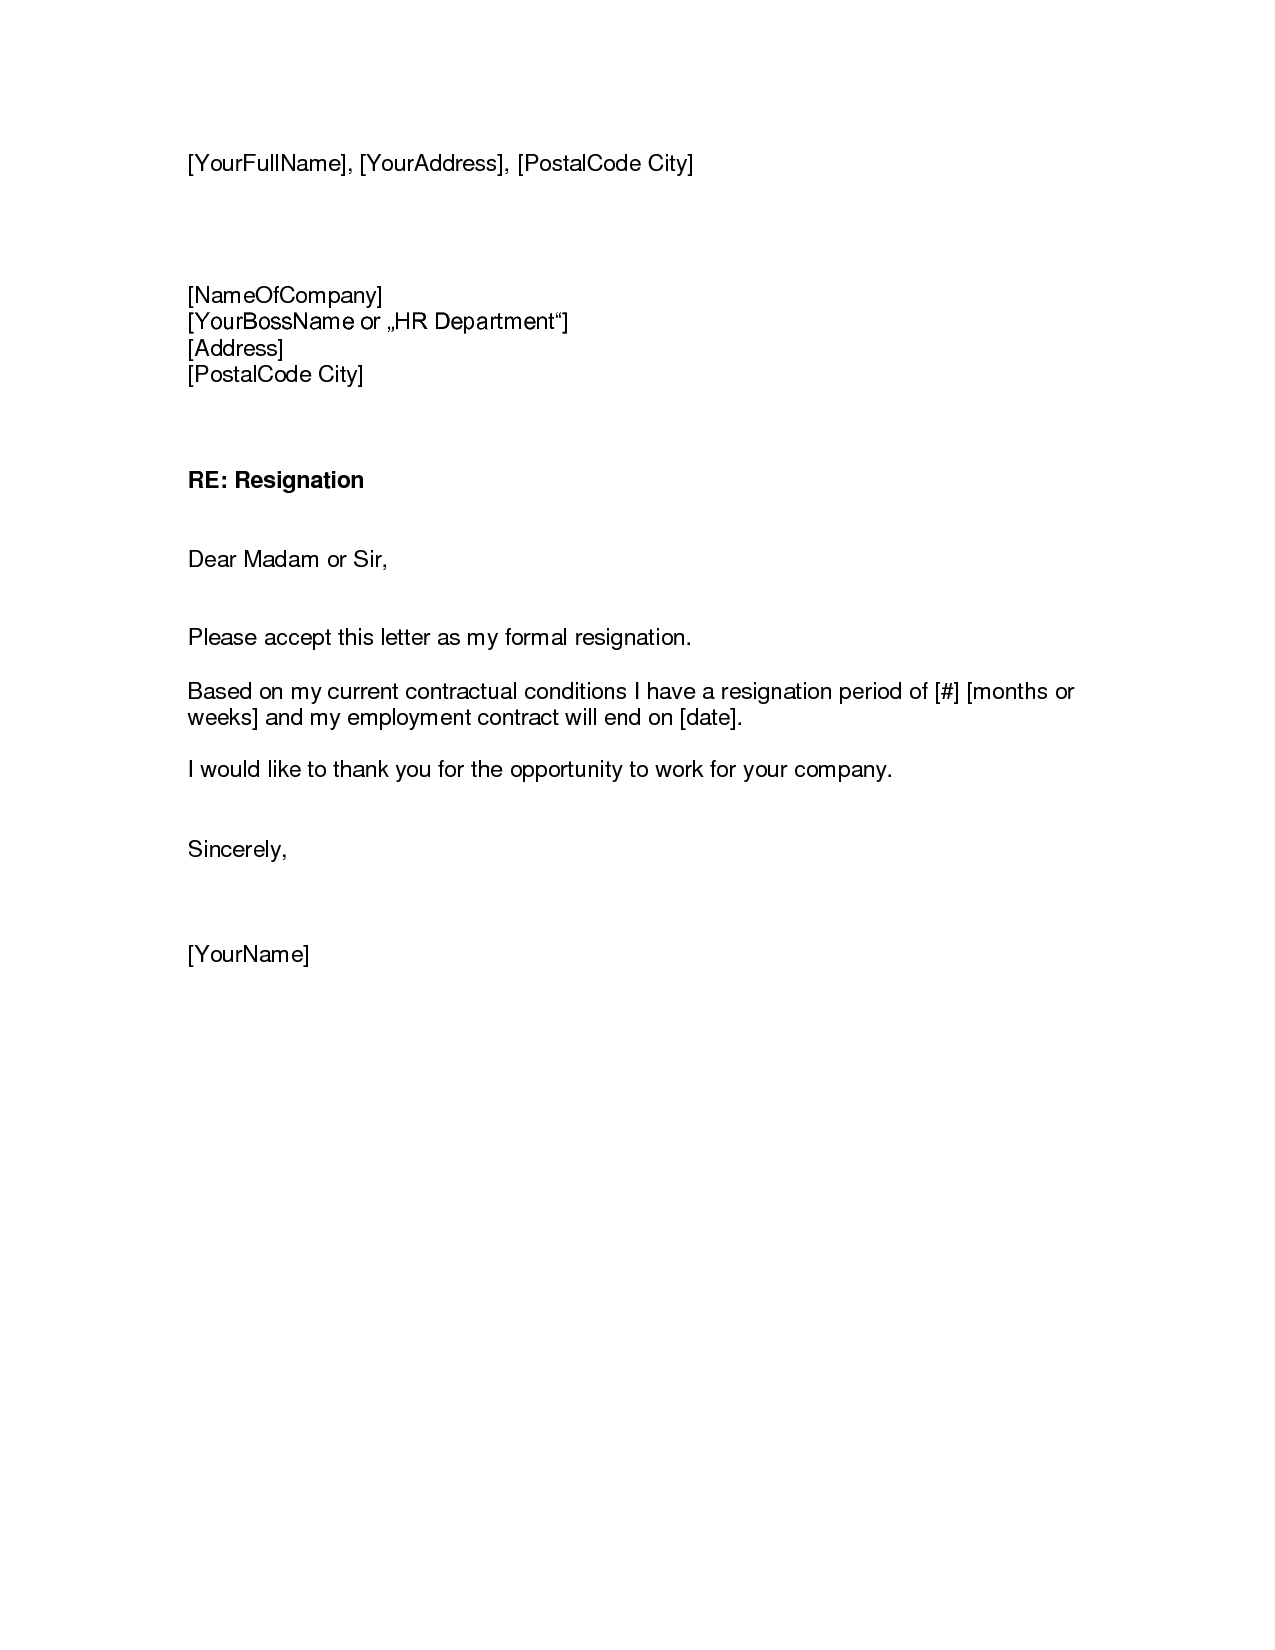 Email letter format confirmation letter format for appointment copy free download resignation letterwriting a letter of resignation spiritdancerdesigns